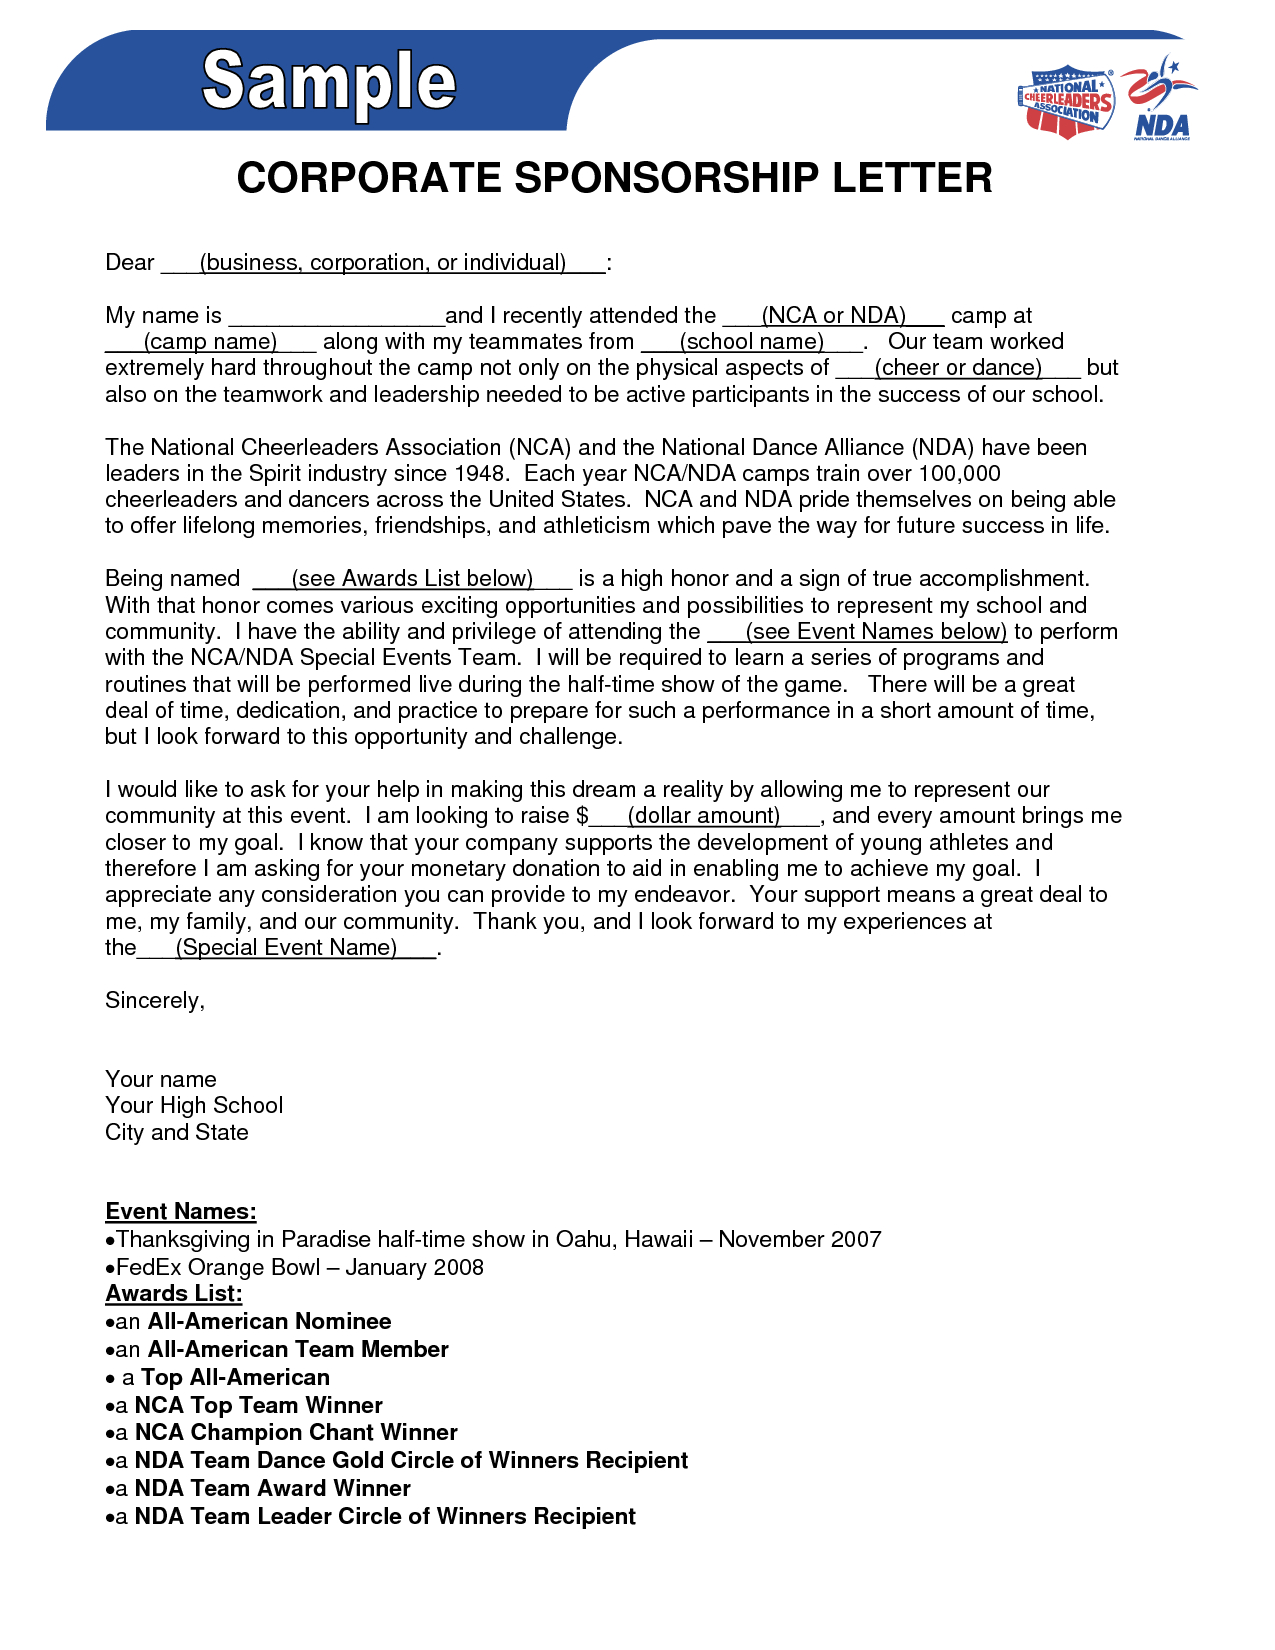 Personal Fundraising Letter Template - Sponsorship form Template